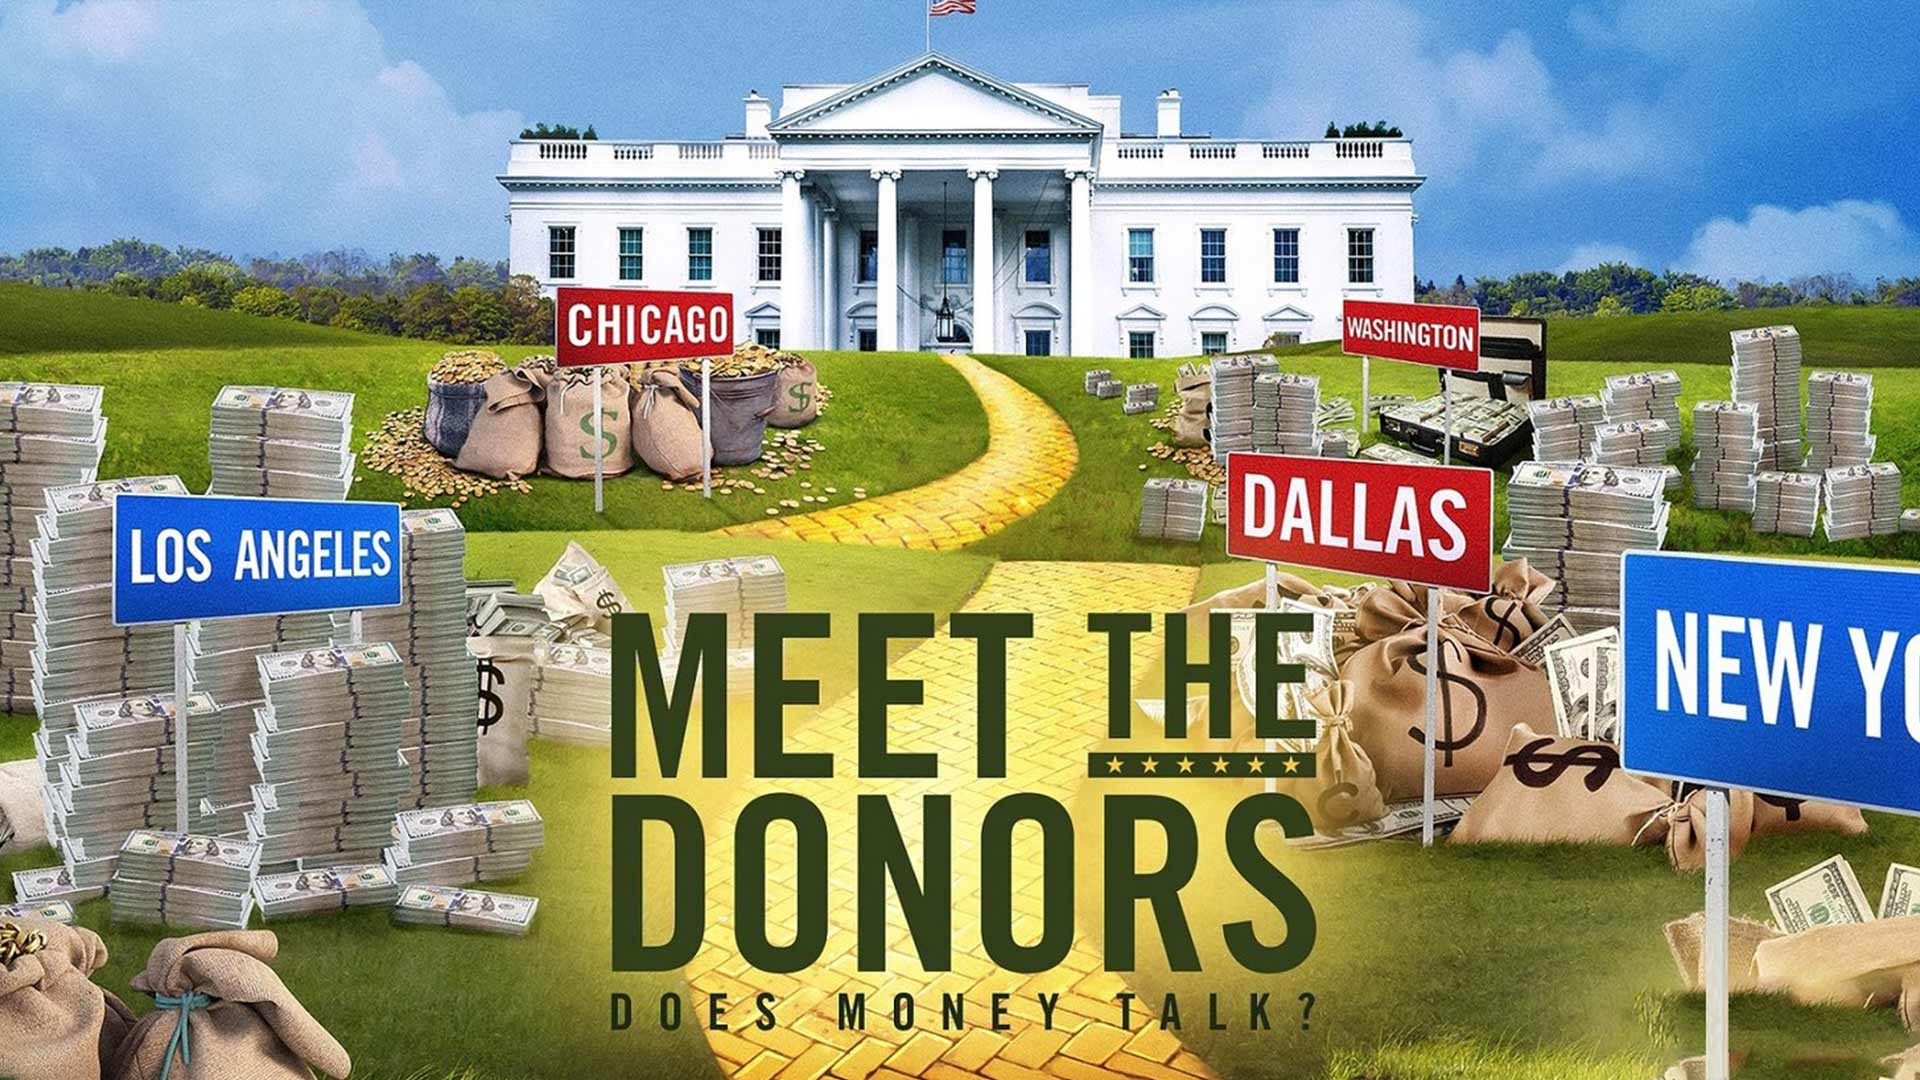 Meet the Donors: Does Money Talk?